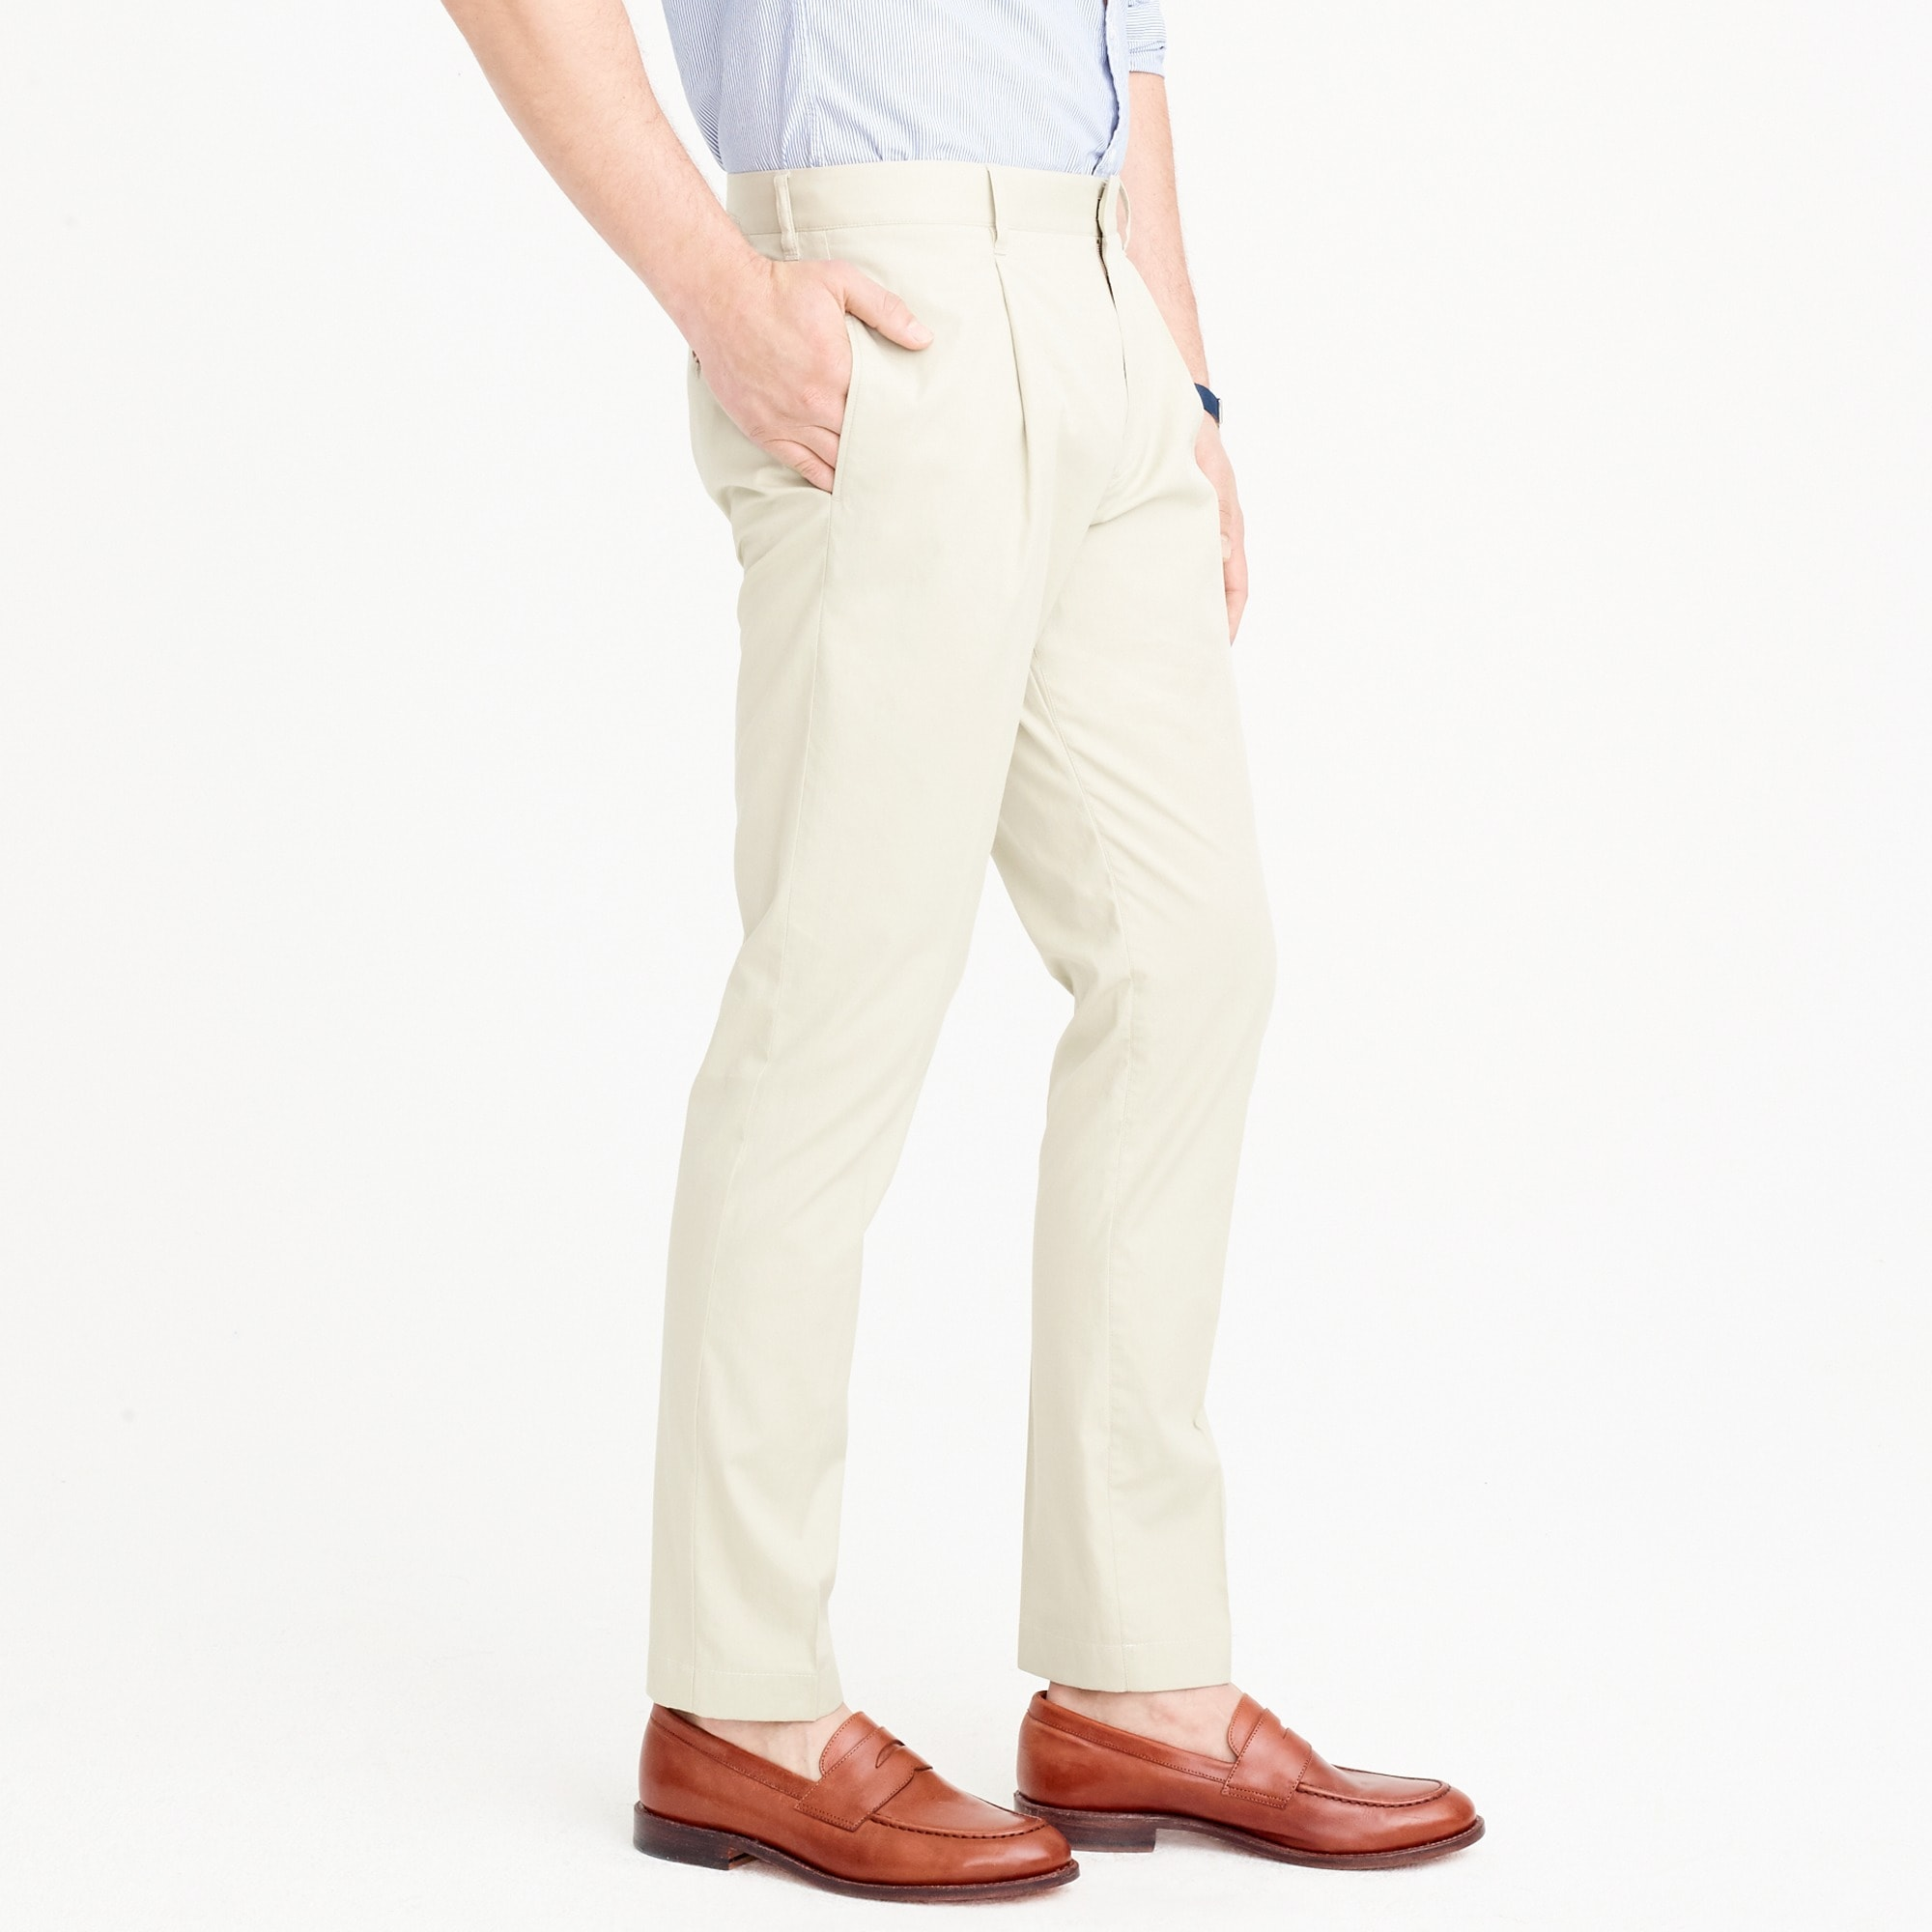 Pleated tapered pant in Italian cotton piqué